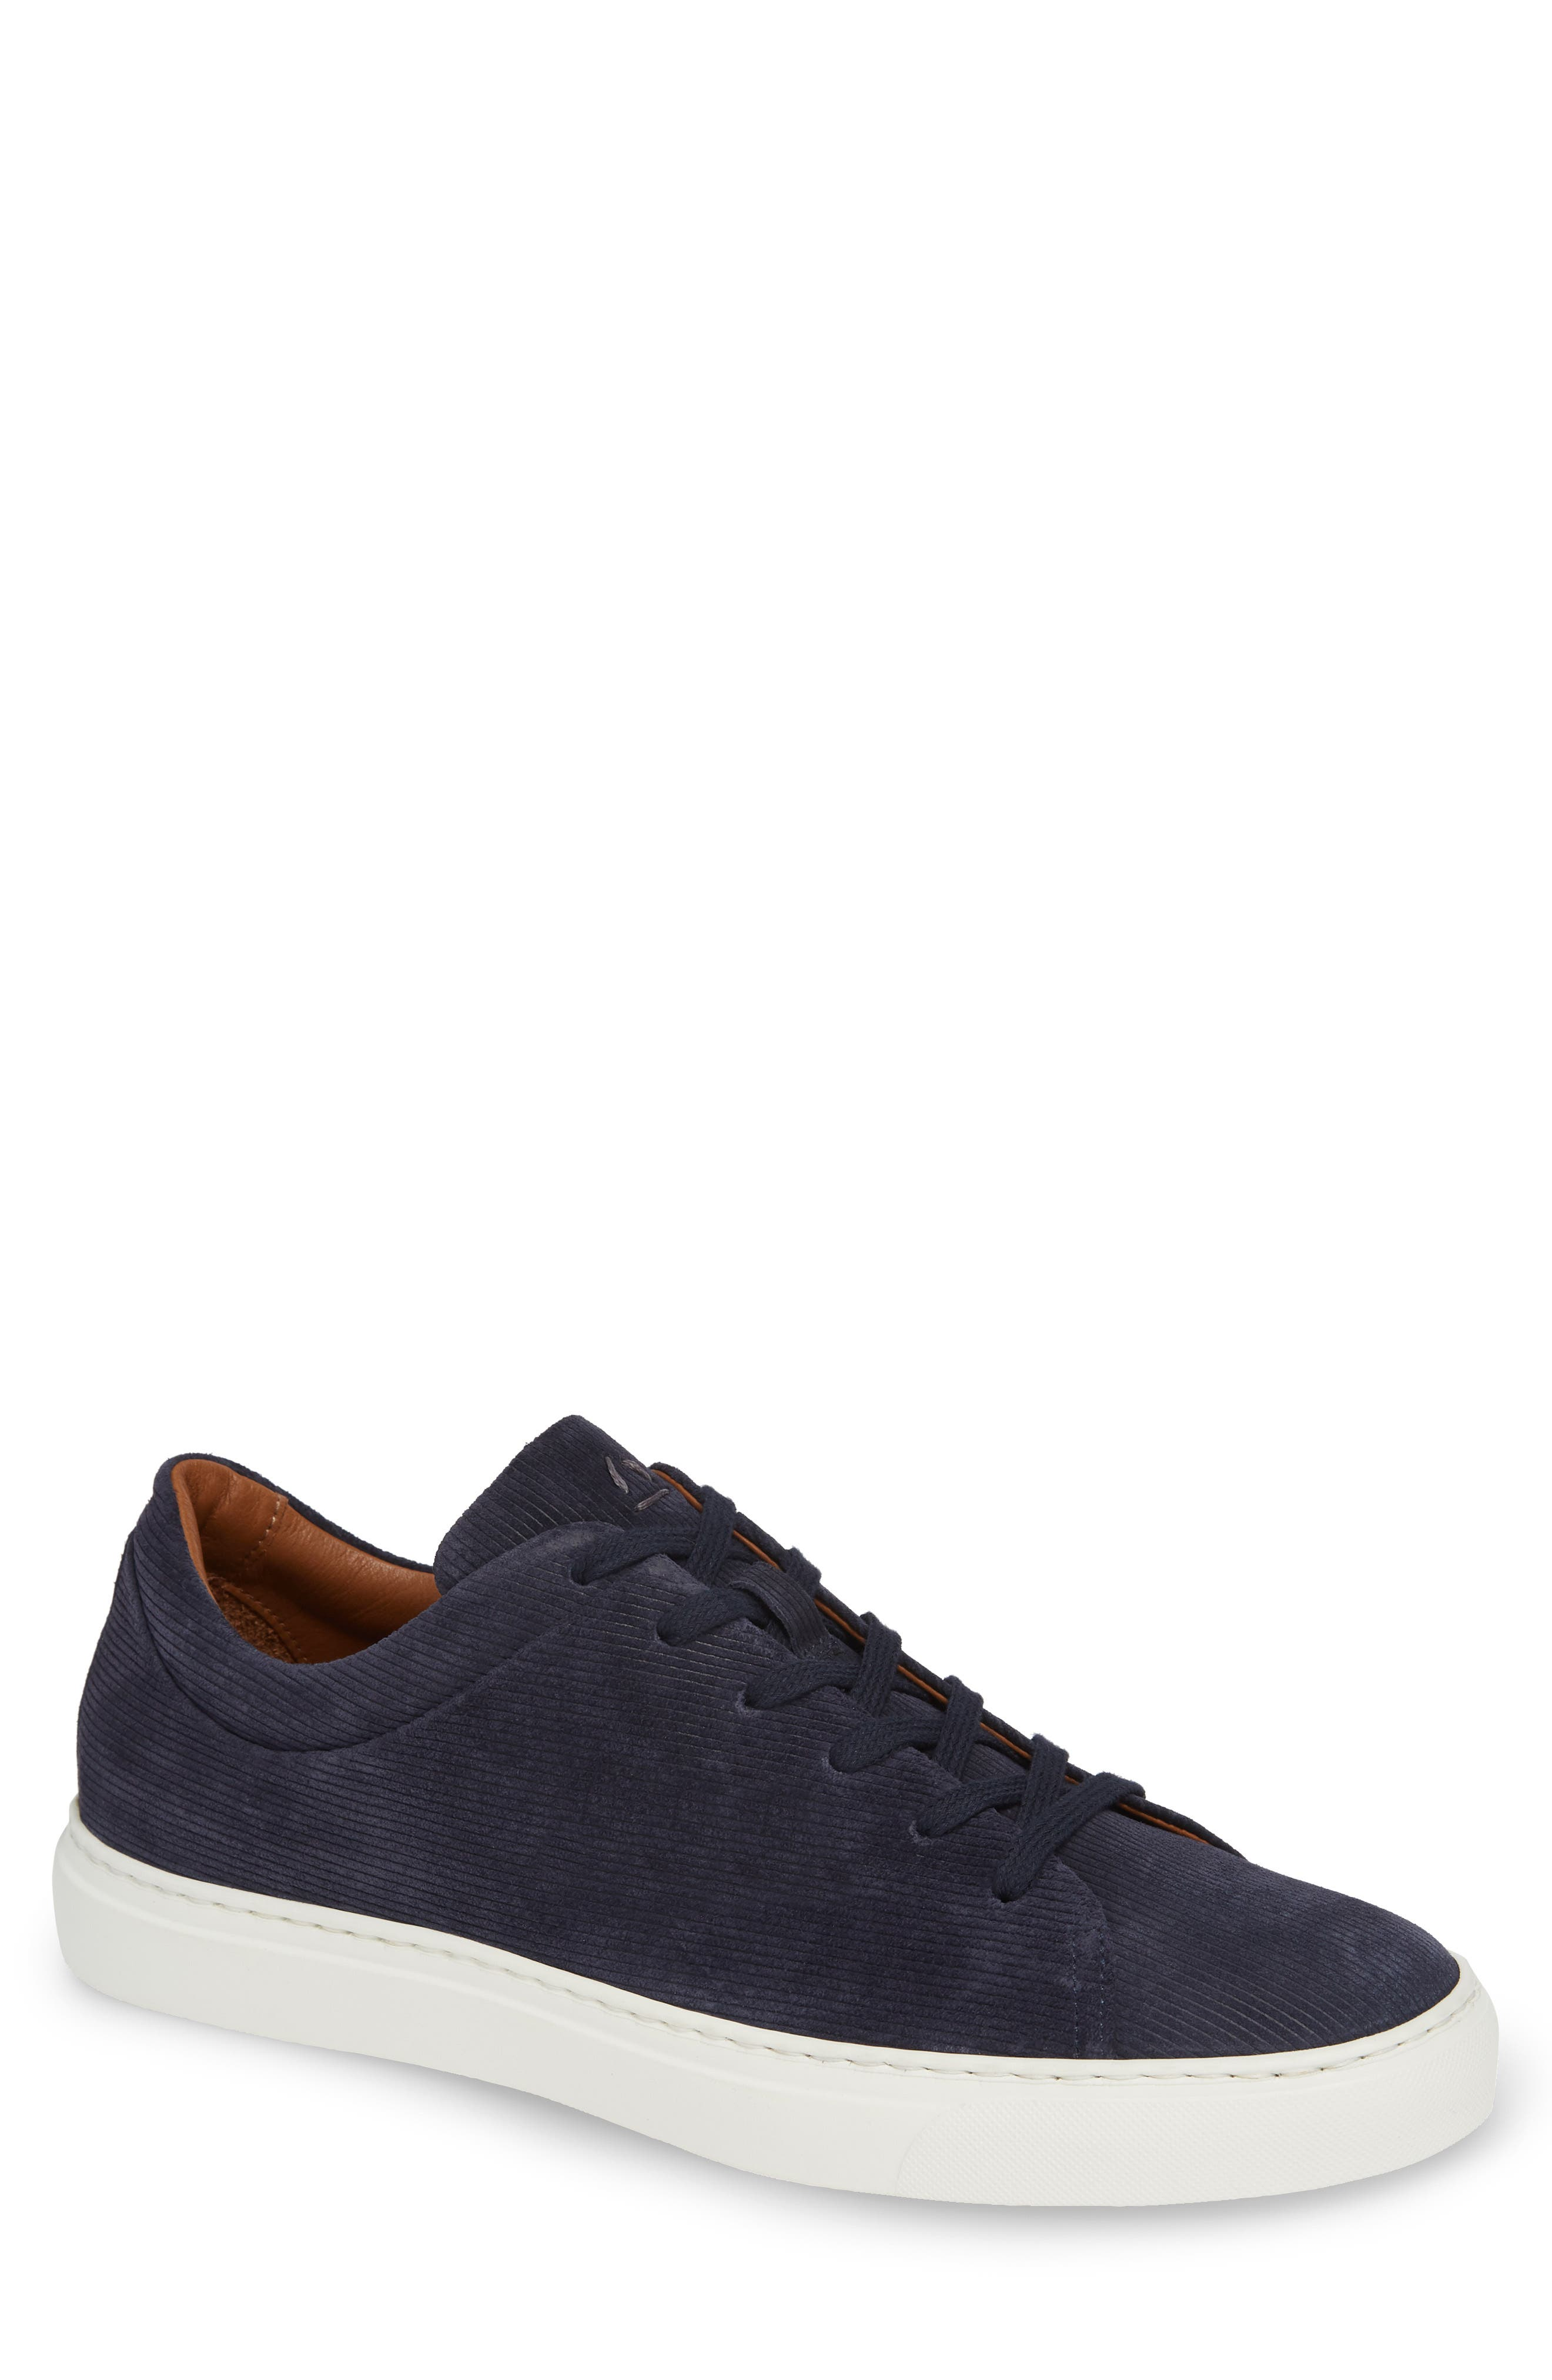 Alaric Sneaker,                             Main thumbnail 1, color,                             Navy Suede